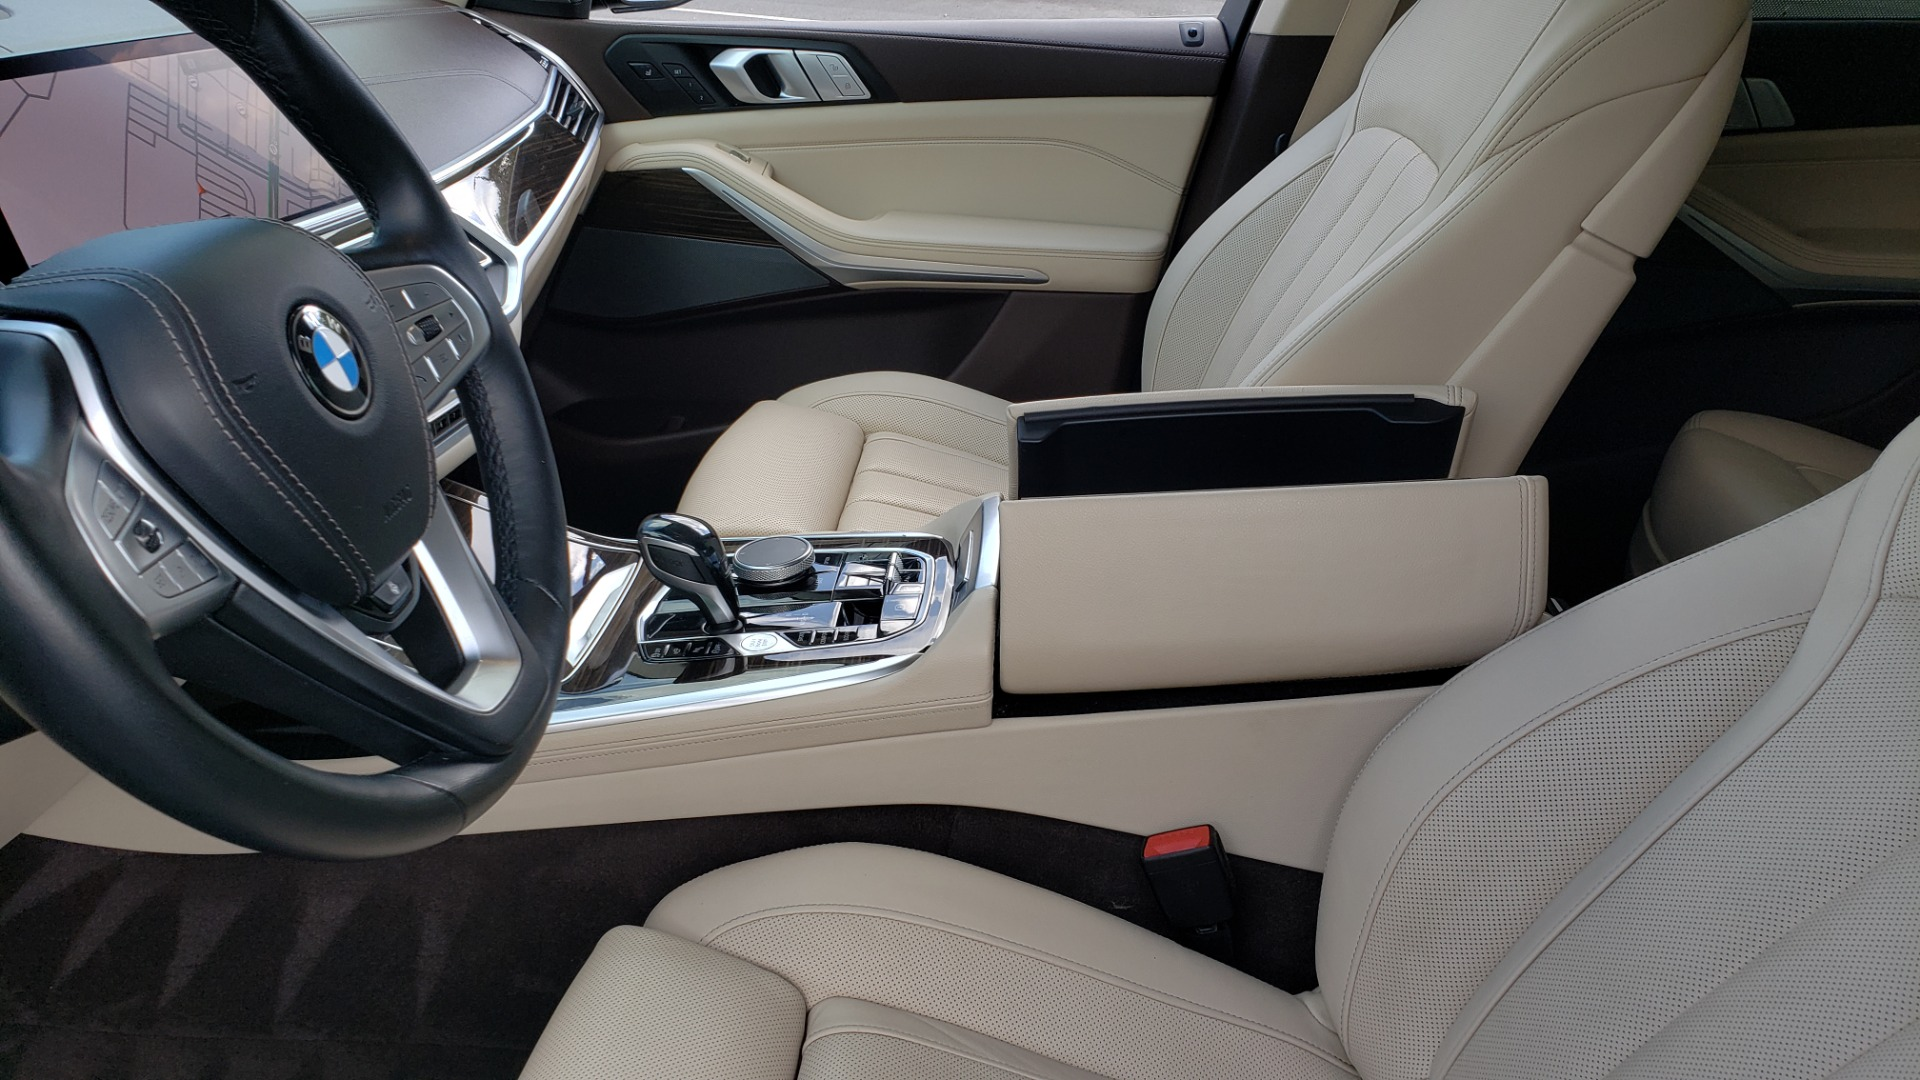 Used 2019 BMW X7 XDRIVE40I PREMIUM / LUXURY / COLD WEATHER / PARK ASST / PANORAMIC SKY / TOW for sale $75,999 at Formula Imports in Charlotte NC 28227 62